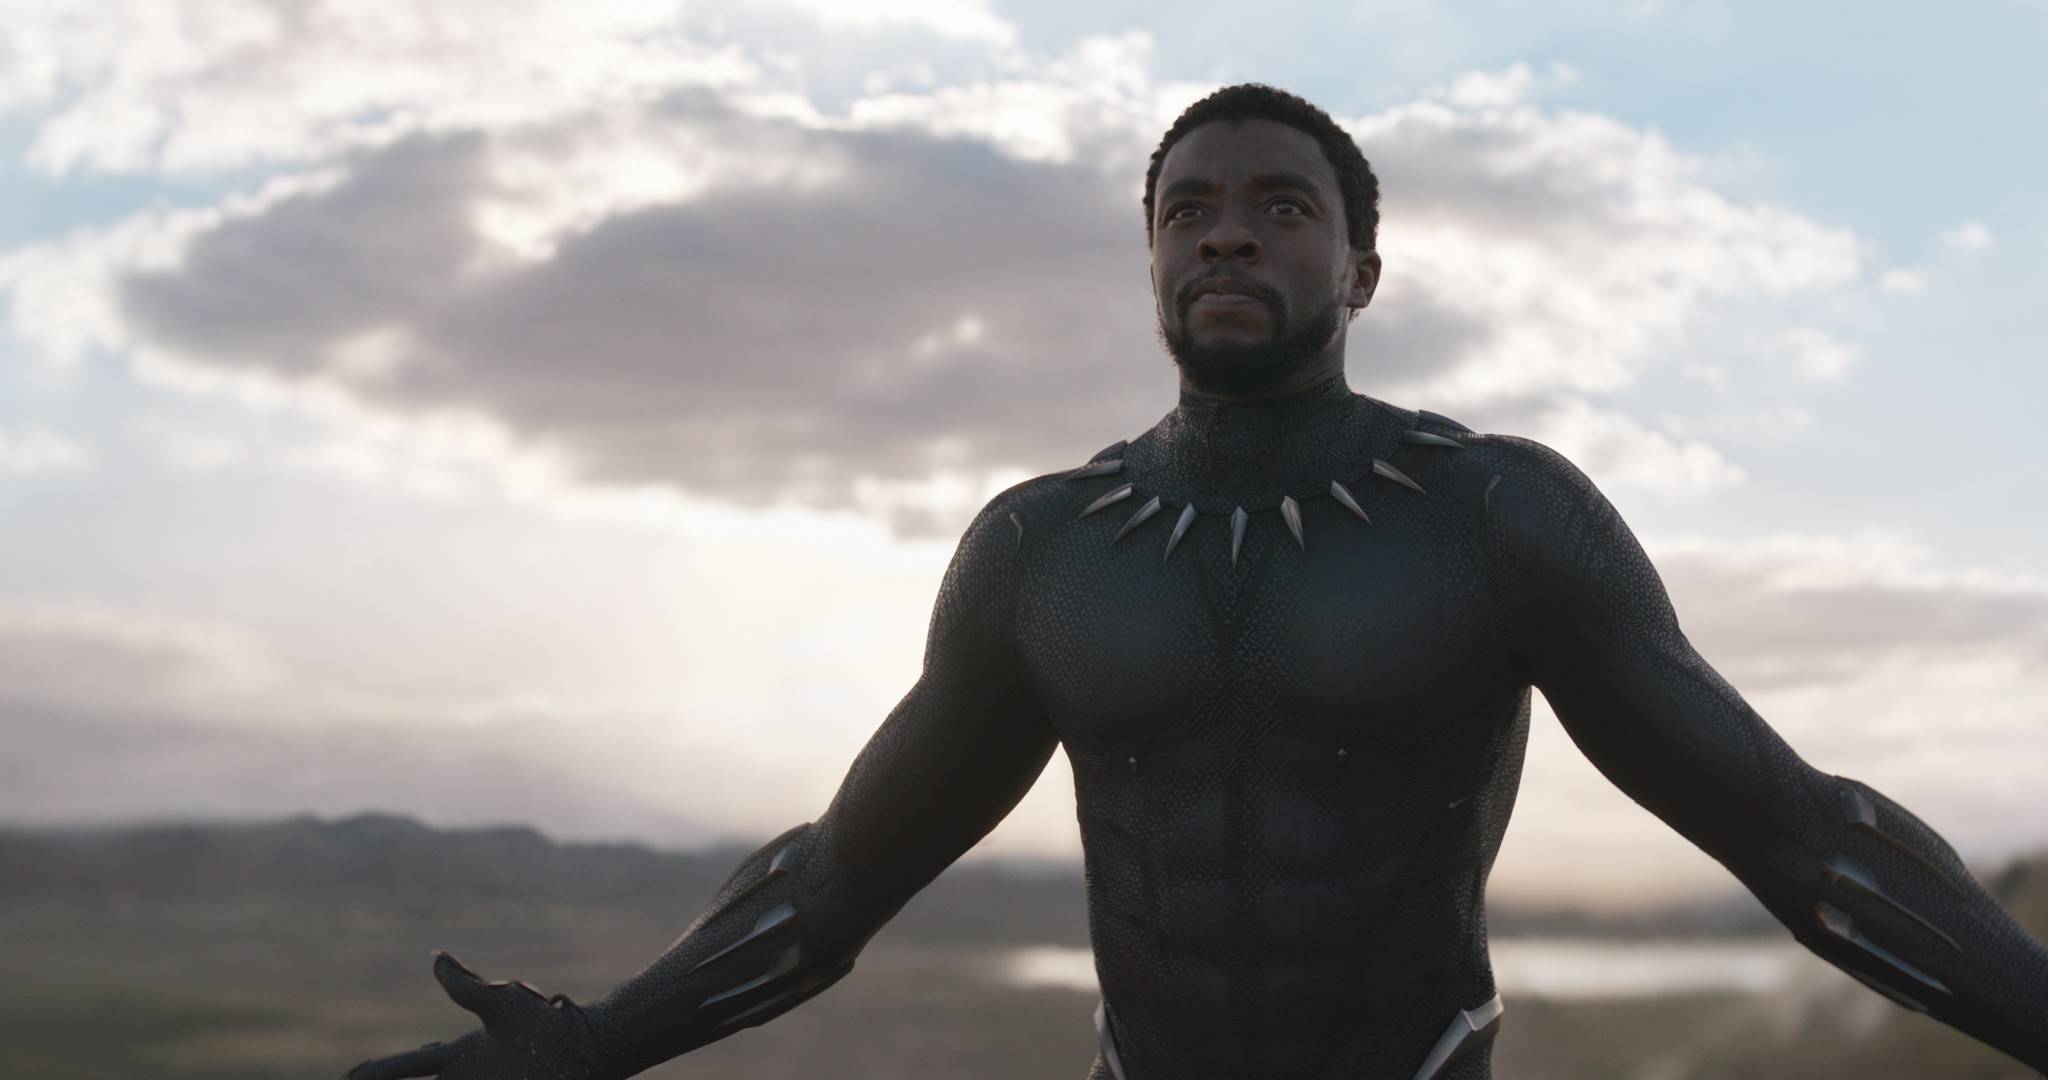 black panther-inspired costume contest planned for jerk x jollof's